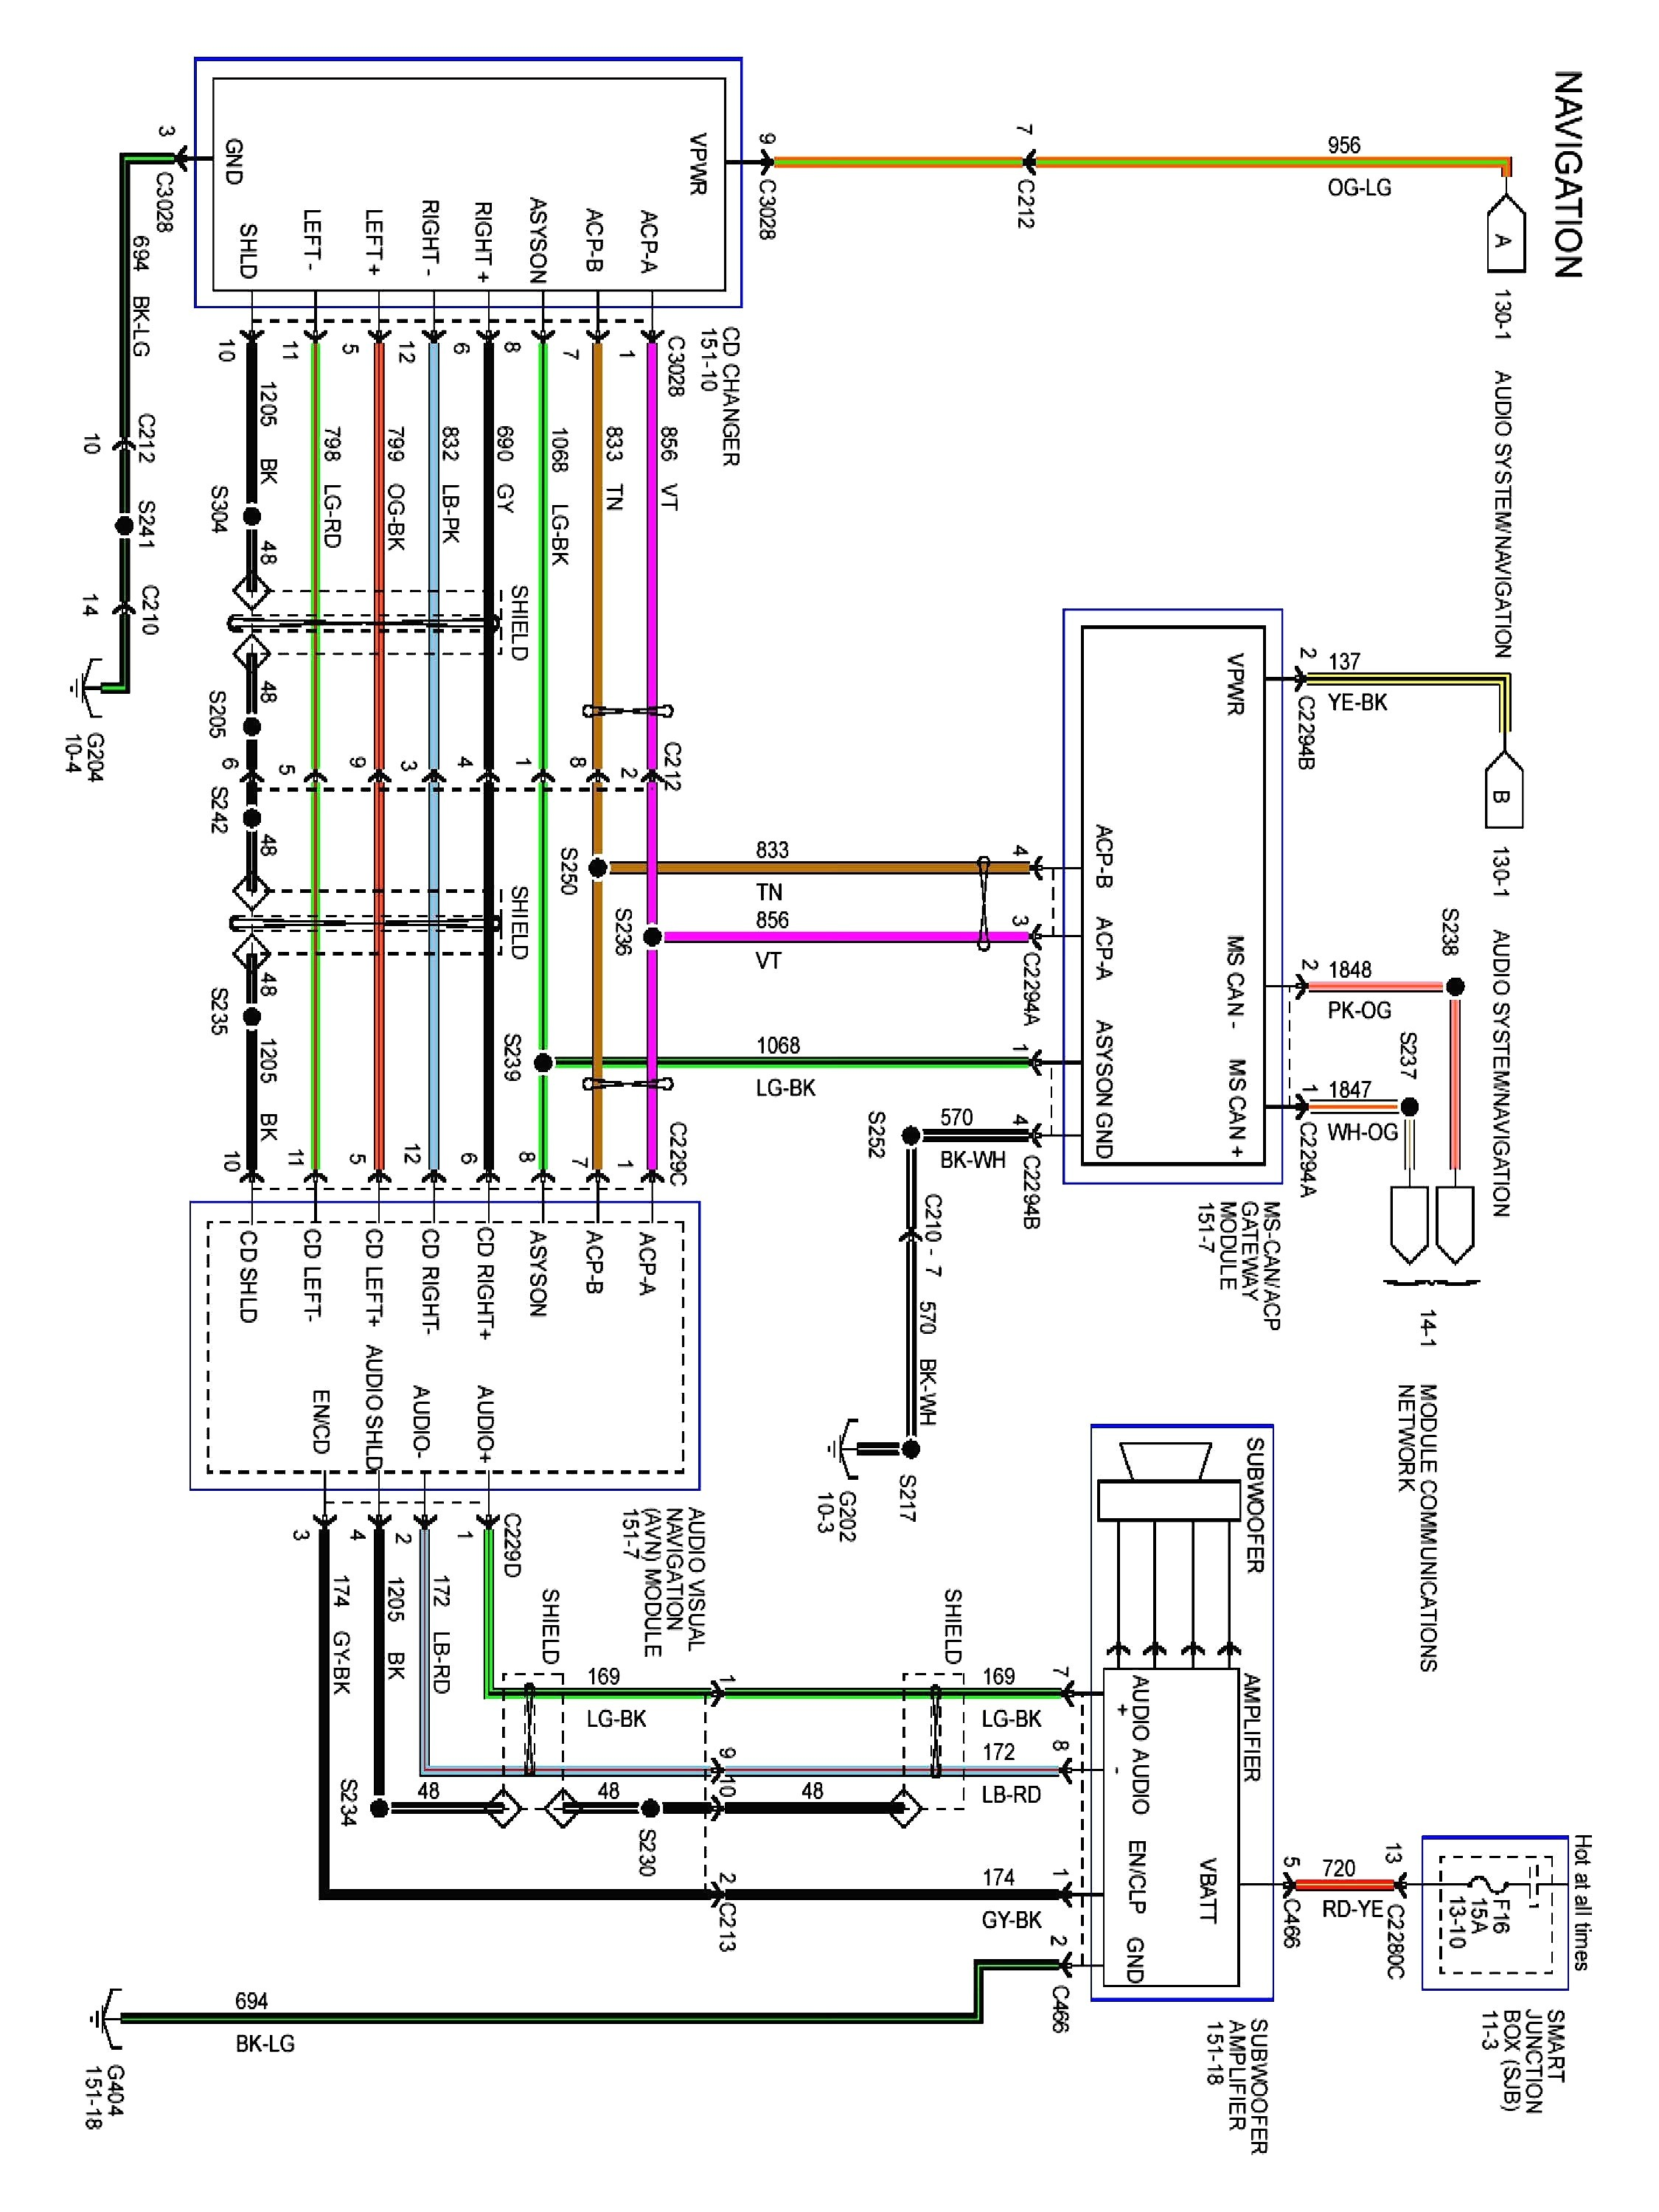 2005 ford Escape Engine Diagram ford Escape Wiring Harness Diagram Wiring Diagram Paper Of 2005 ford Escape Engine Diagram 05 ford Escape Wiring Diagram Wiring Diagram toolbox